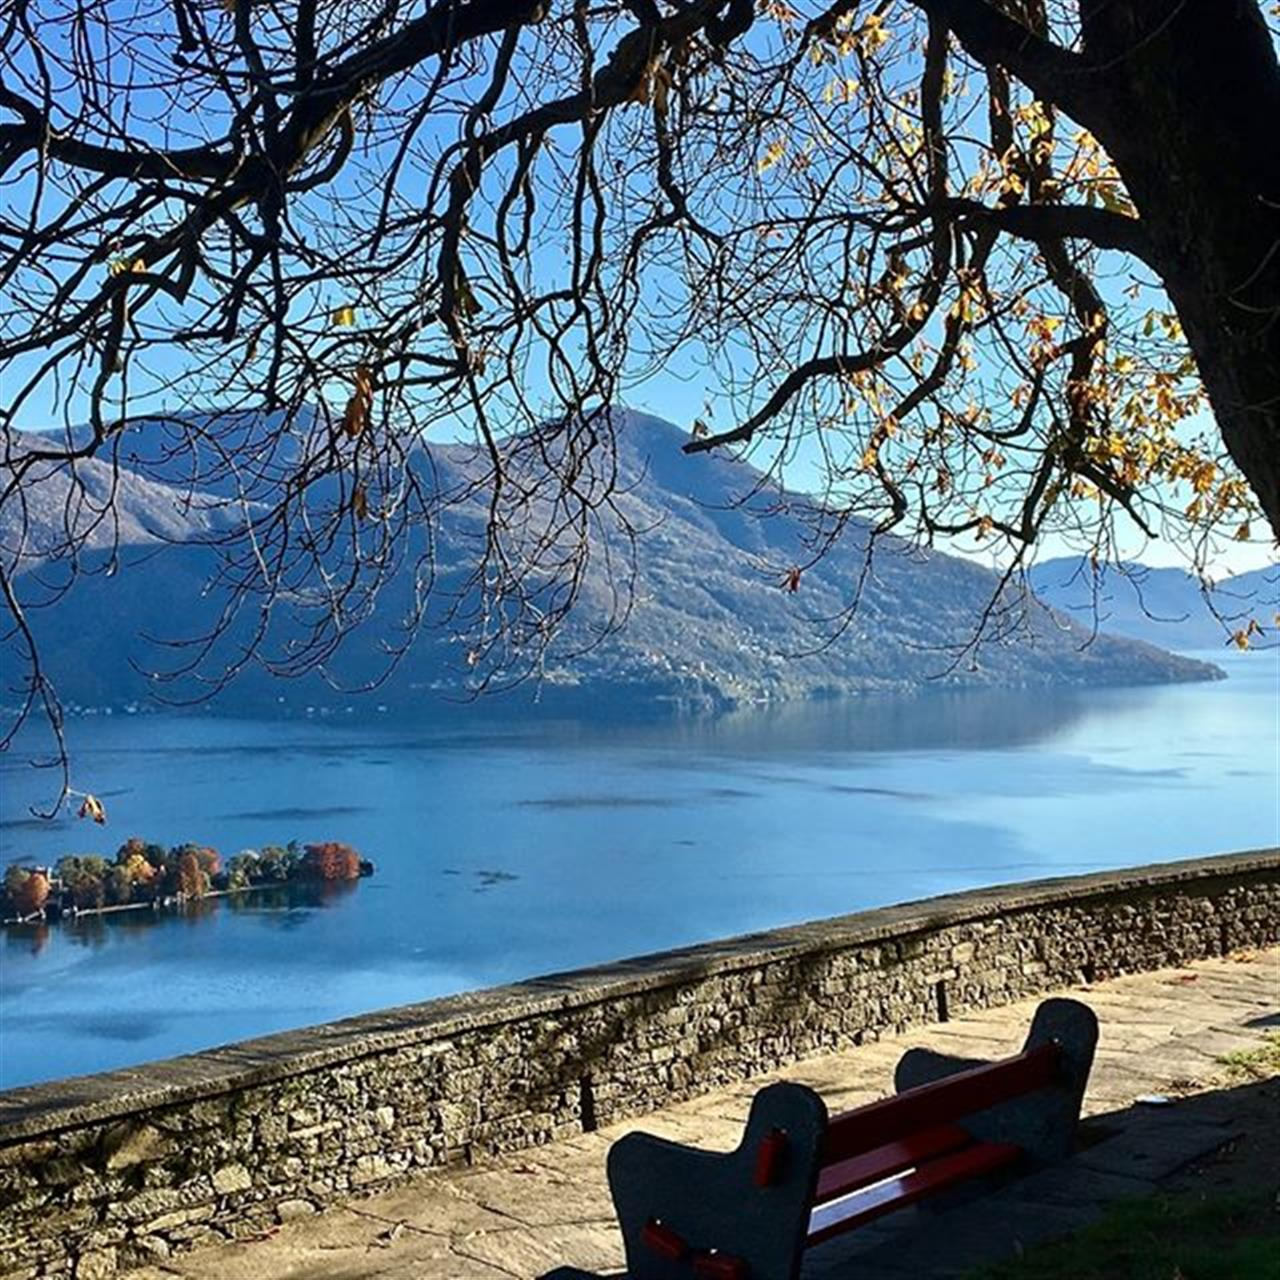 Lake Maggiore and the Brissago isle in autumn, Ticino, Switzerland  #lakemaggiore #ticino #switzerland #luxuryrealestate #luxurylife  #luxurylifestyle #christiesinternationalrealestate #luxuryportfolio #wetagconsulting #leadingre #ChristiesHomes #takemehere #FF #instafollow #l4l #tagforlikes #followback #instagood #tbt #photooftheday #followme #likeforlike #LeadingRElocal